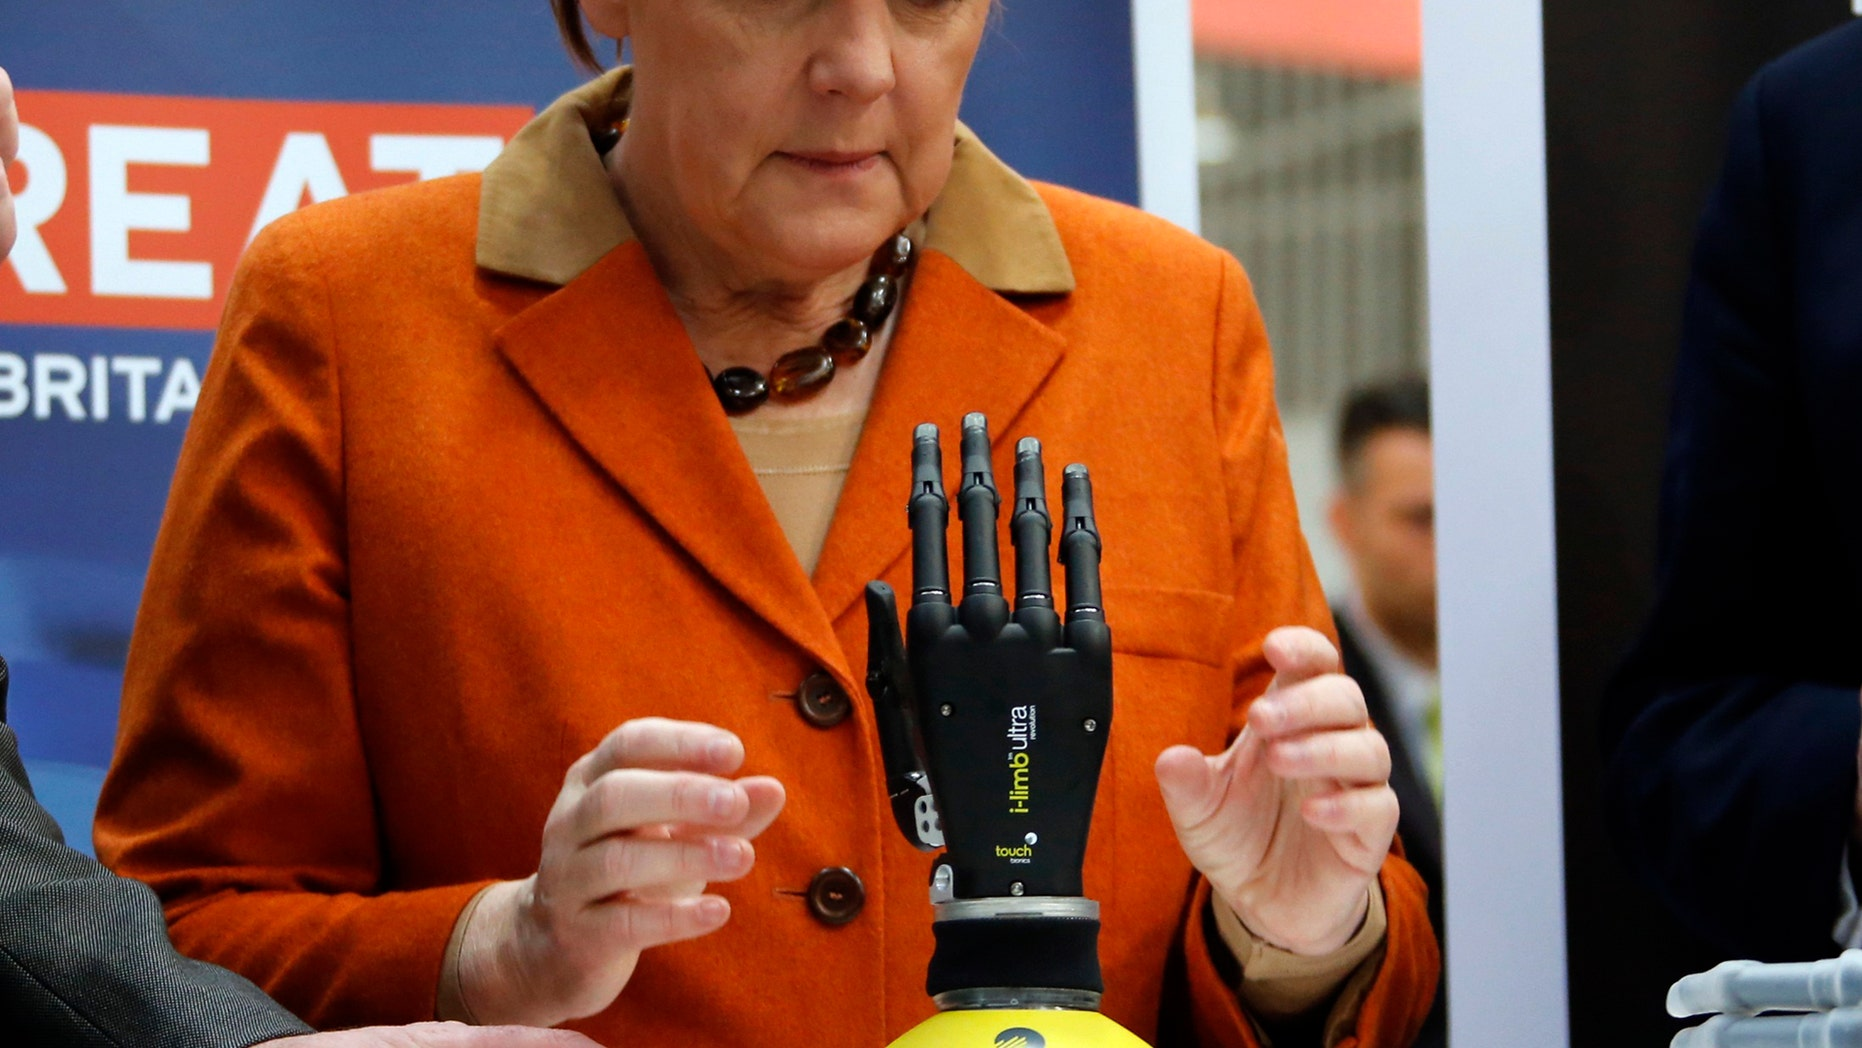 File photo: German Chancellor Angela Merkel looks at a bionic hand during a tour at the CeBIT technology fair in Hanover March 10, 2014. (REUTERS/Fabrizio Bensch)